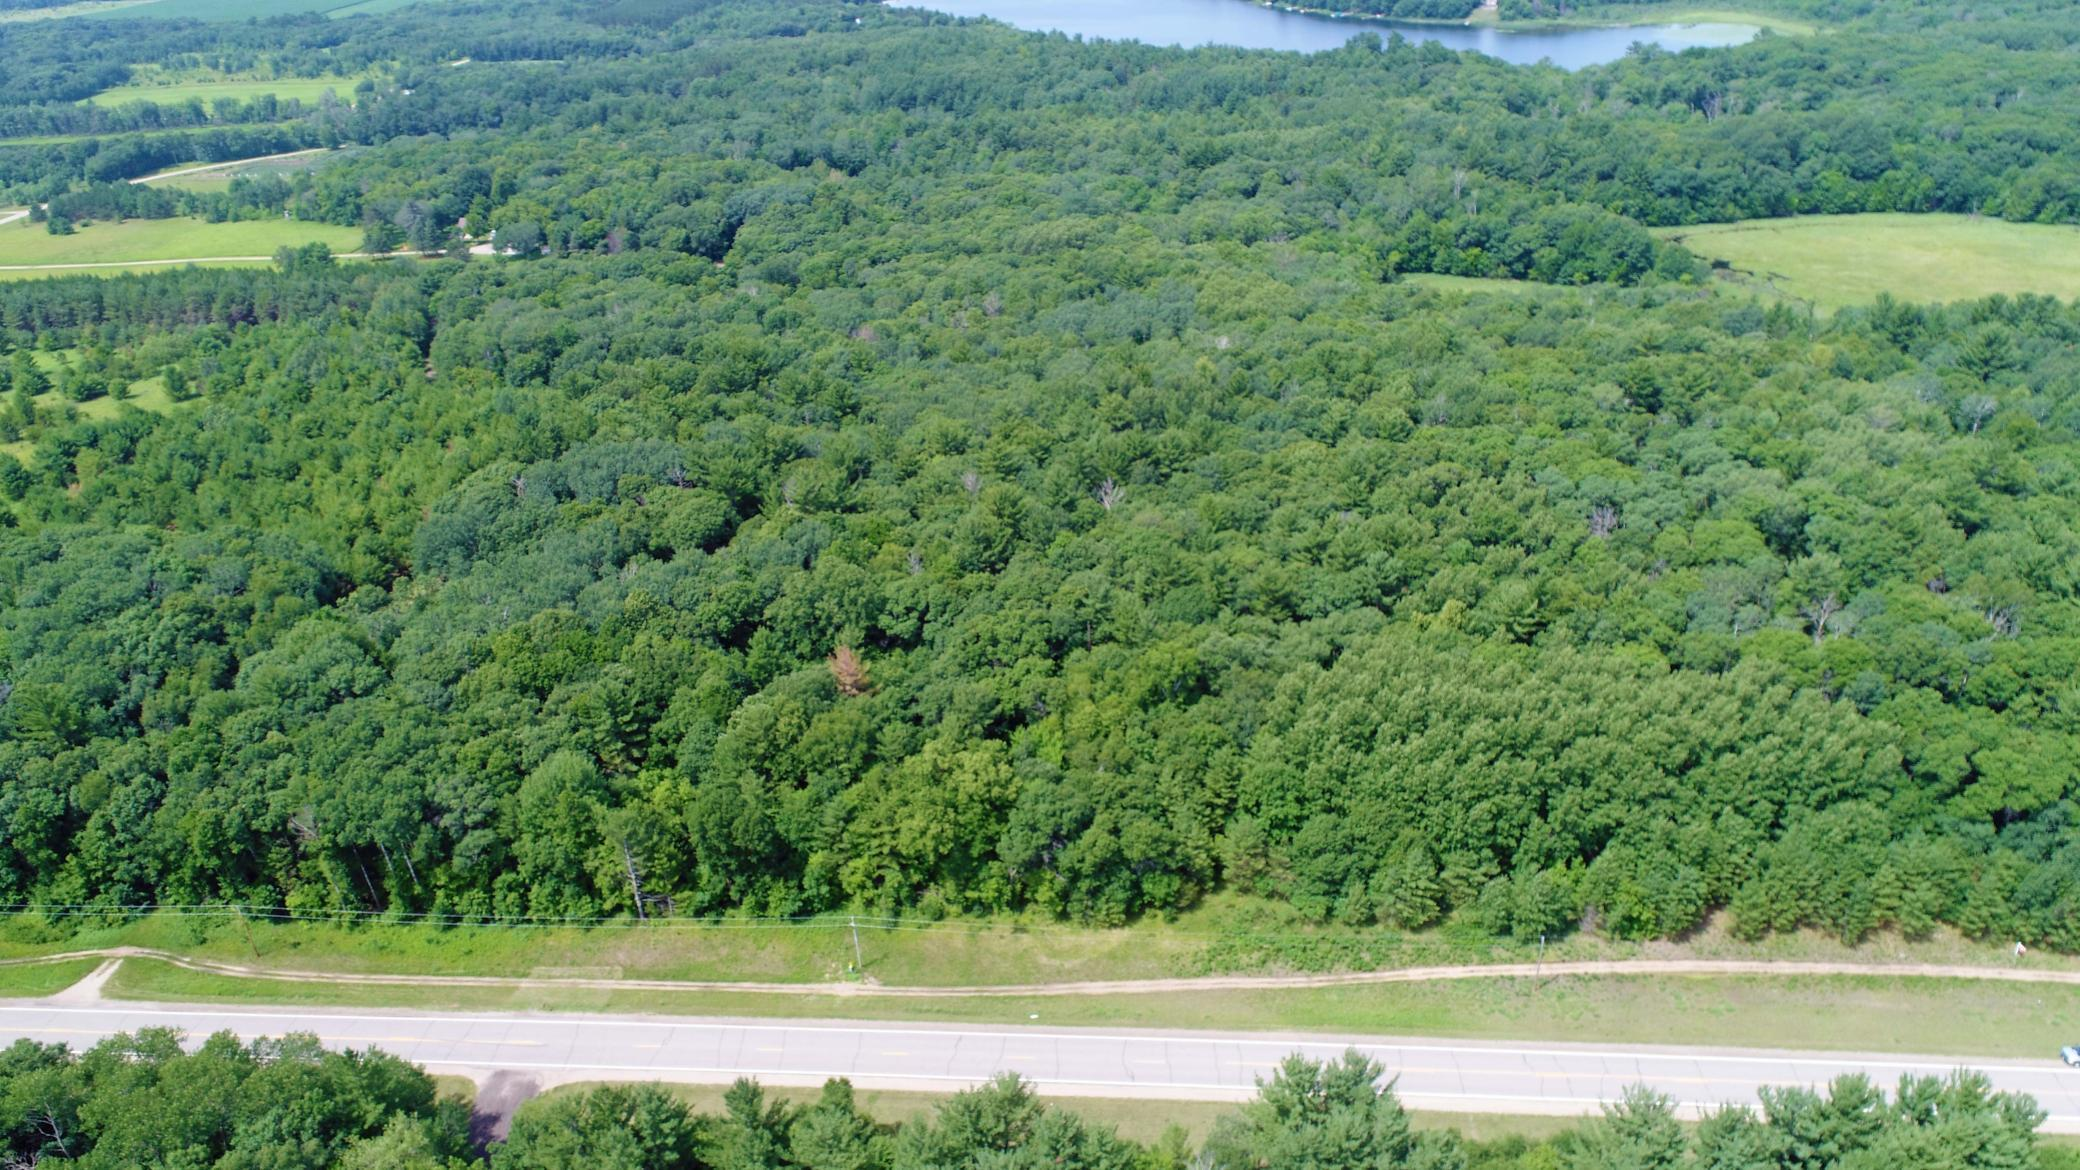 TBD County 17 Property Photo - Browerville, MN real estate listing